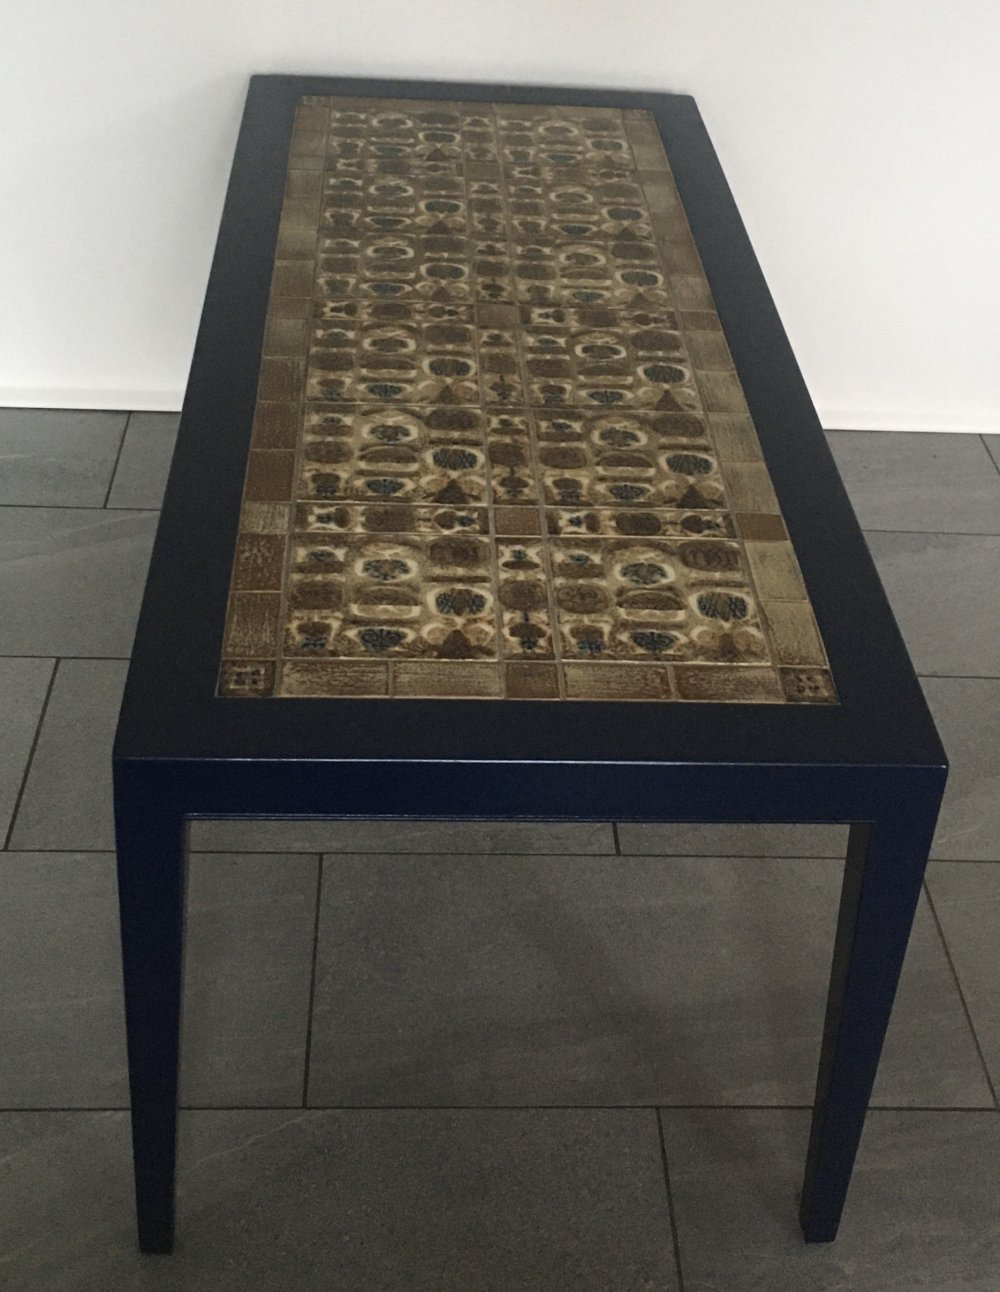 Severin Hansen Coffee table with Baca tiles from Royal Copenhagen